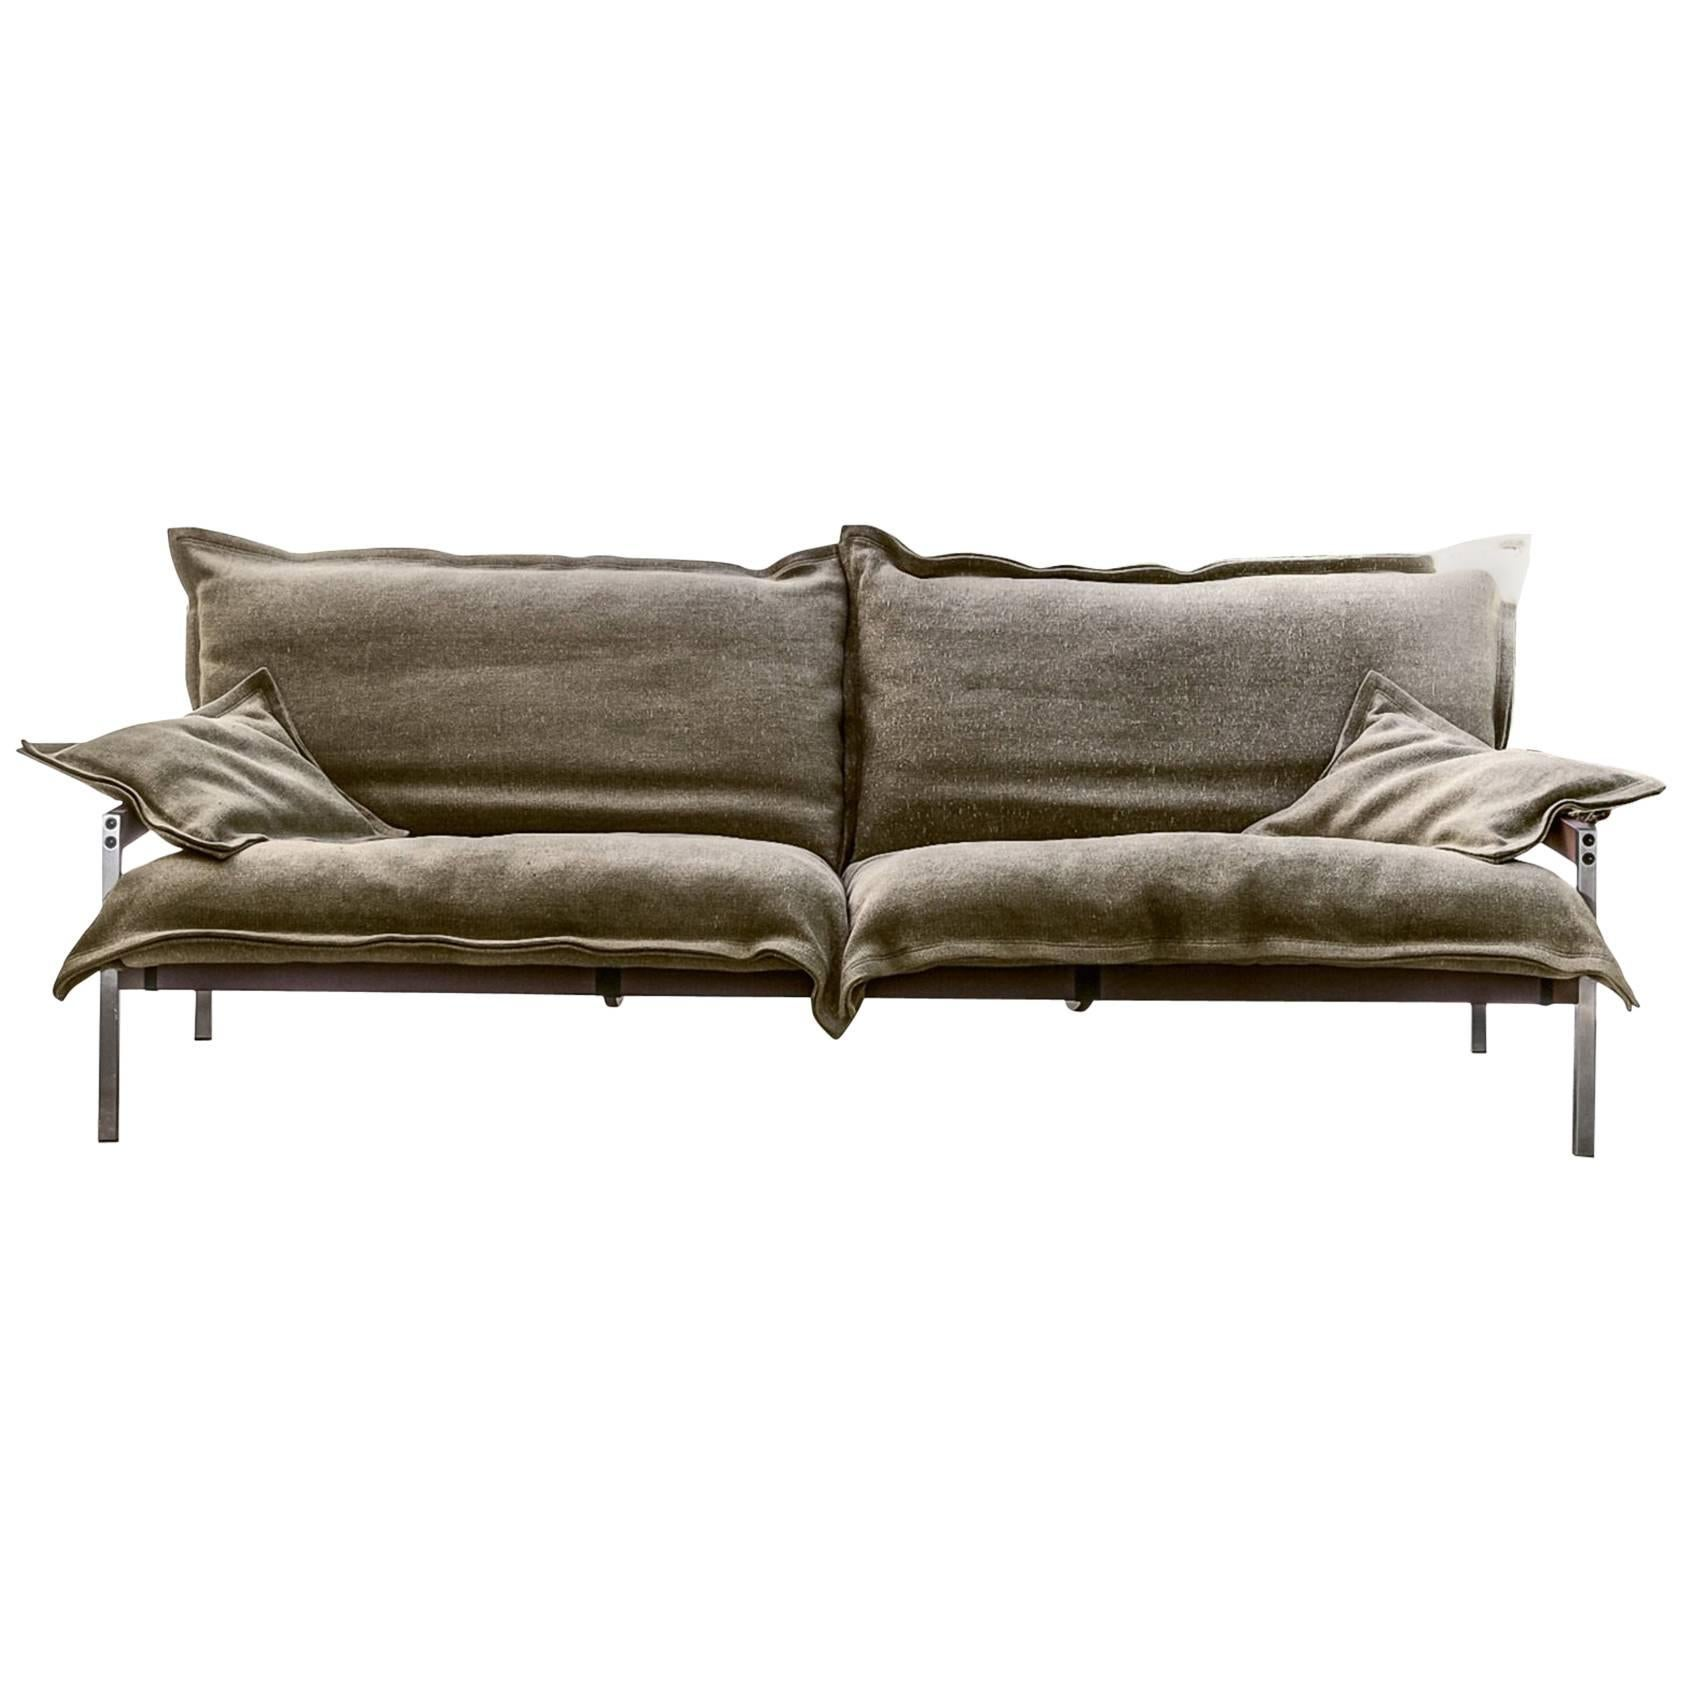 """Iron Maiden"" Three-Seat Upholstered Steel Frame Sofa by Moroso for Diesel"